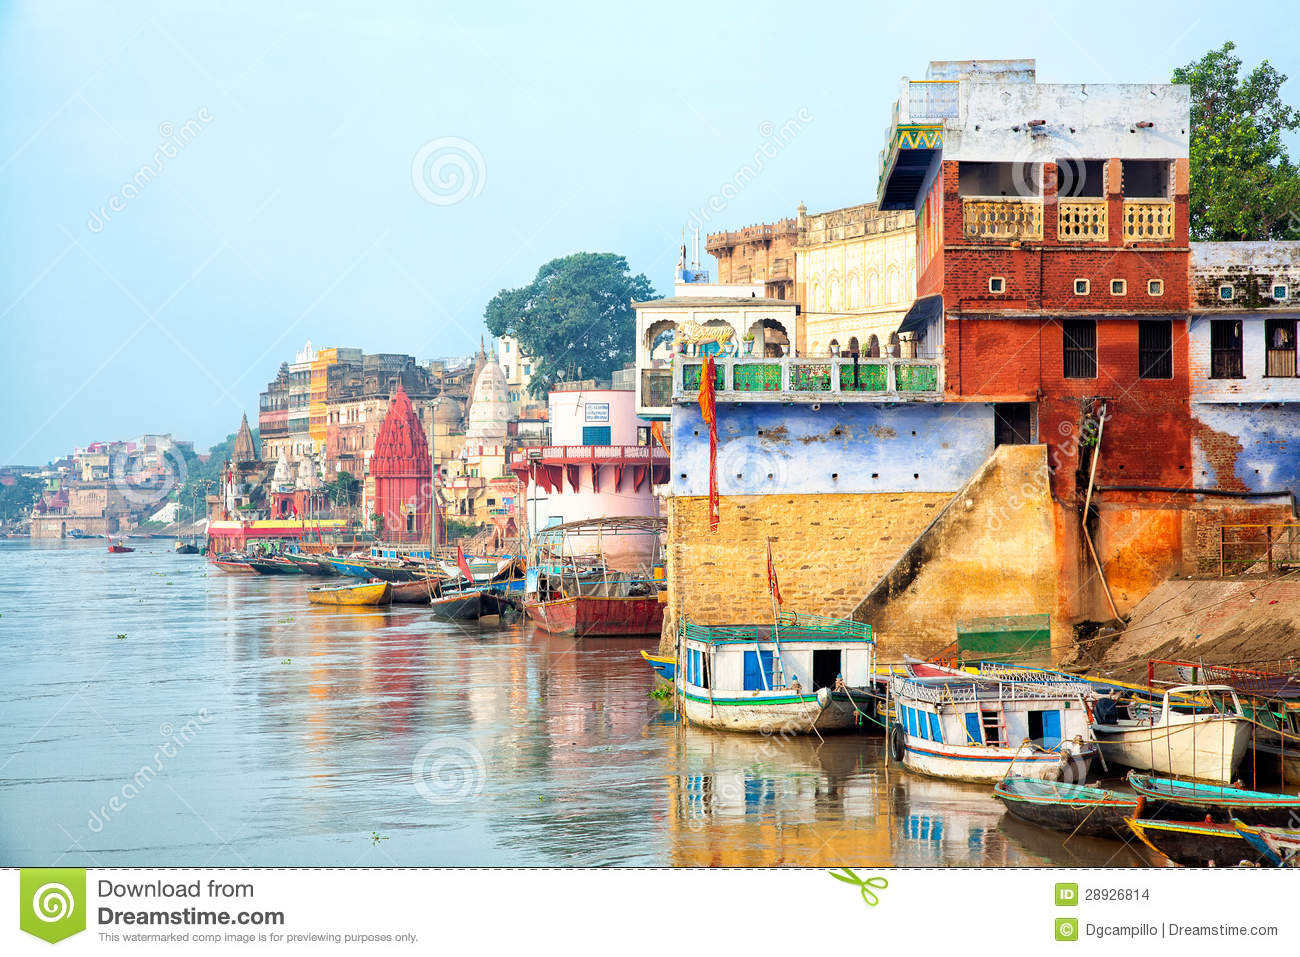 View of Varanesi and Ganges river